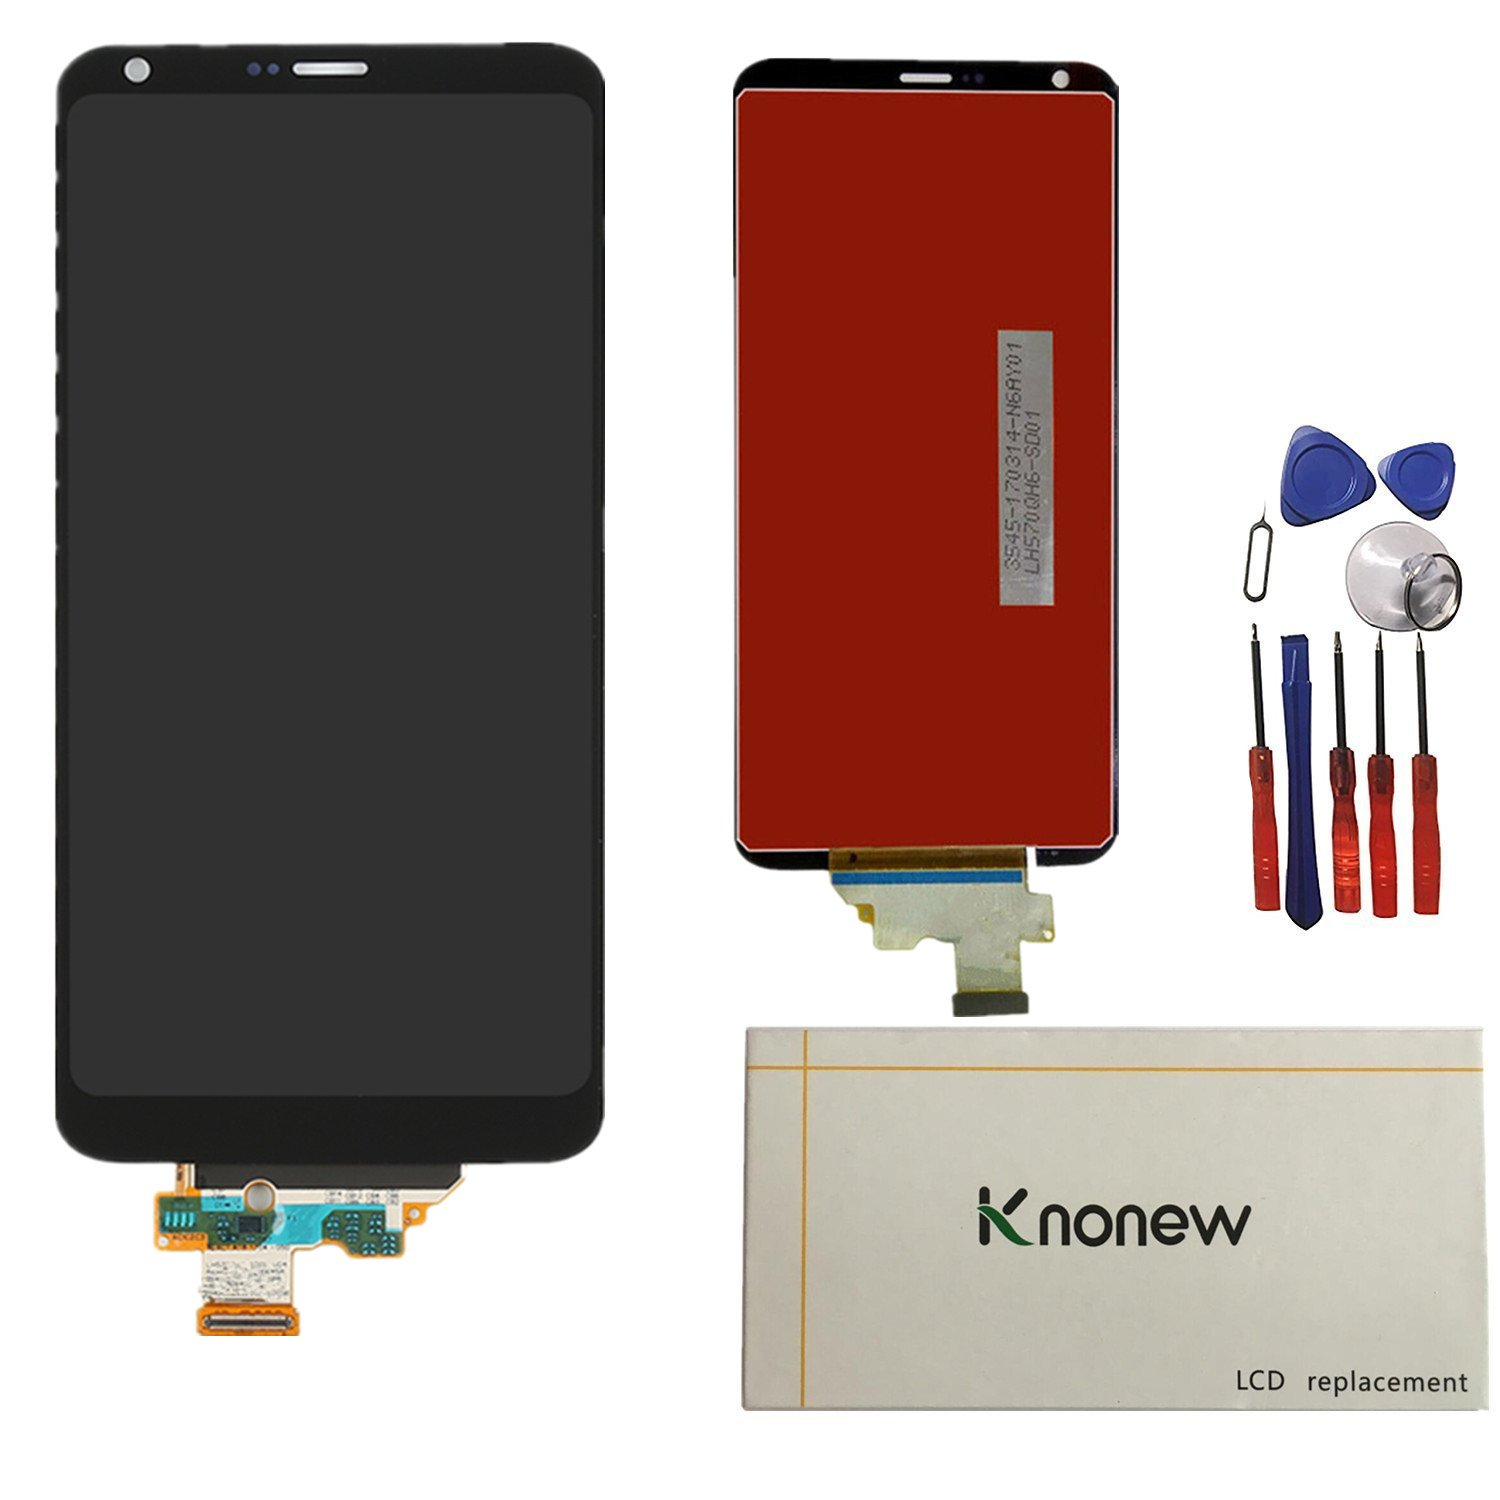 KNONEW Glass LCD Display Touch Screen Digitizer Assembly Replacement part For LG G6 H870 H871 H872 LS993 VS998 US997 LCD + Tools (Black)